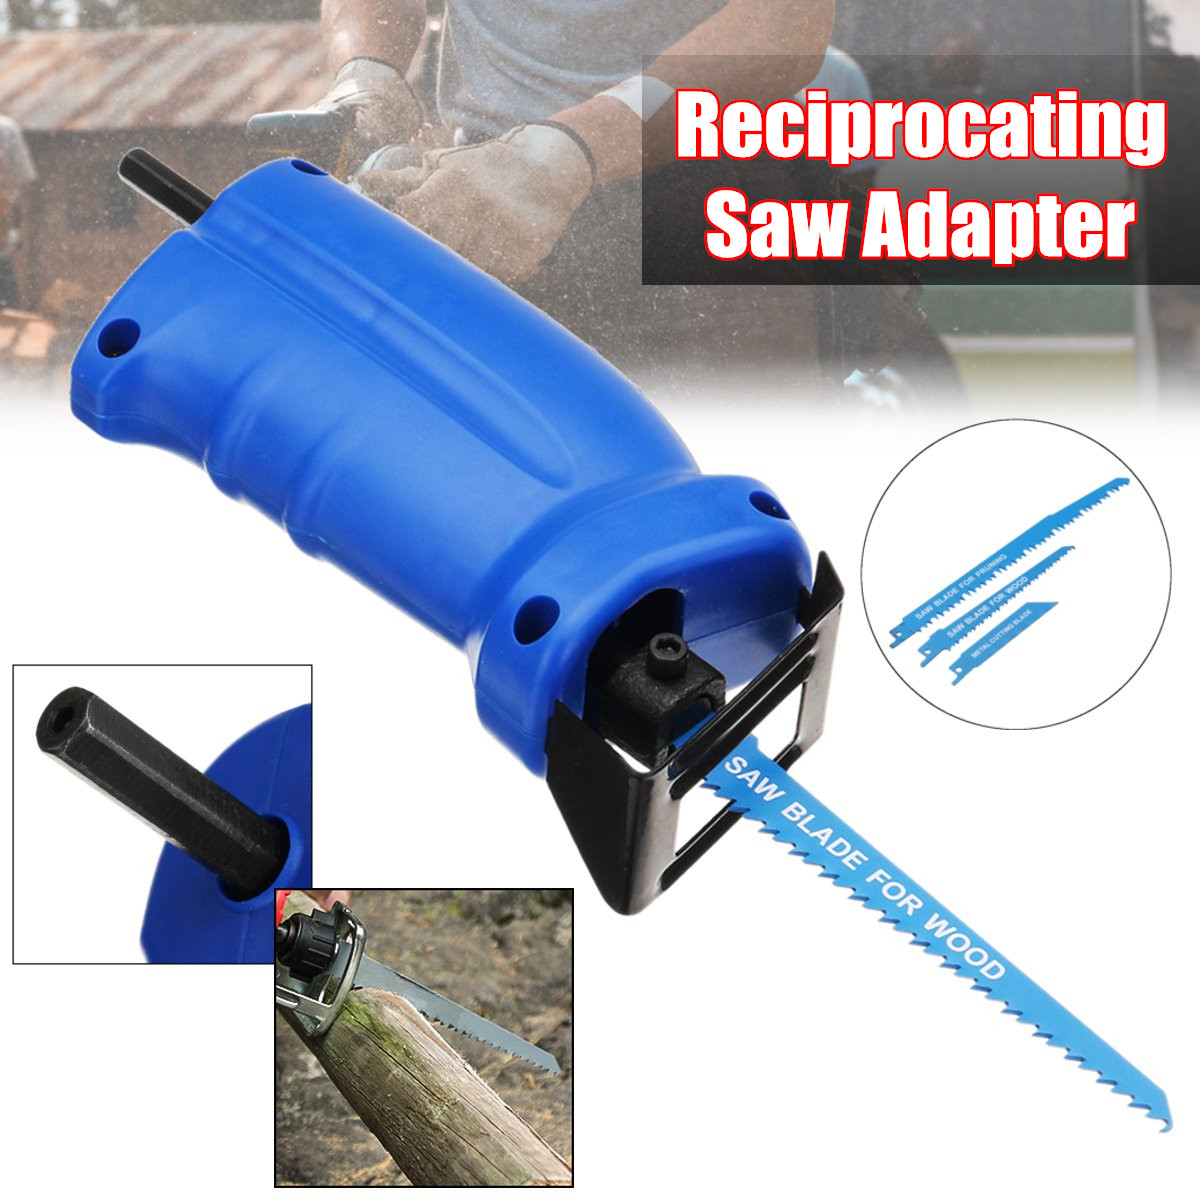 Drillpro Portable Reciprocating Saw Adapter Set Changed Electric Drill Into Reciprocating Electric Saw PartsDrillpro Portable Reciprocating Saw Adapter Set Changed Electric Drill Into Reciprocating Electric Saw Parts